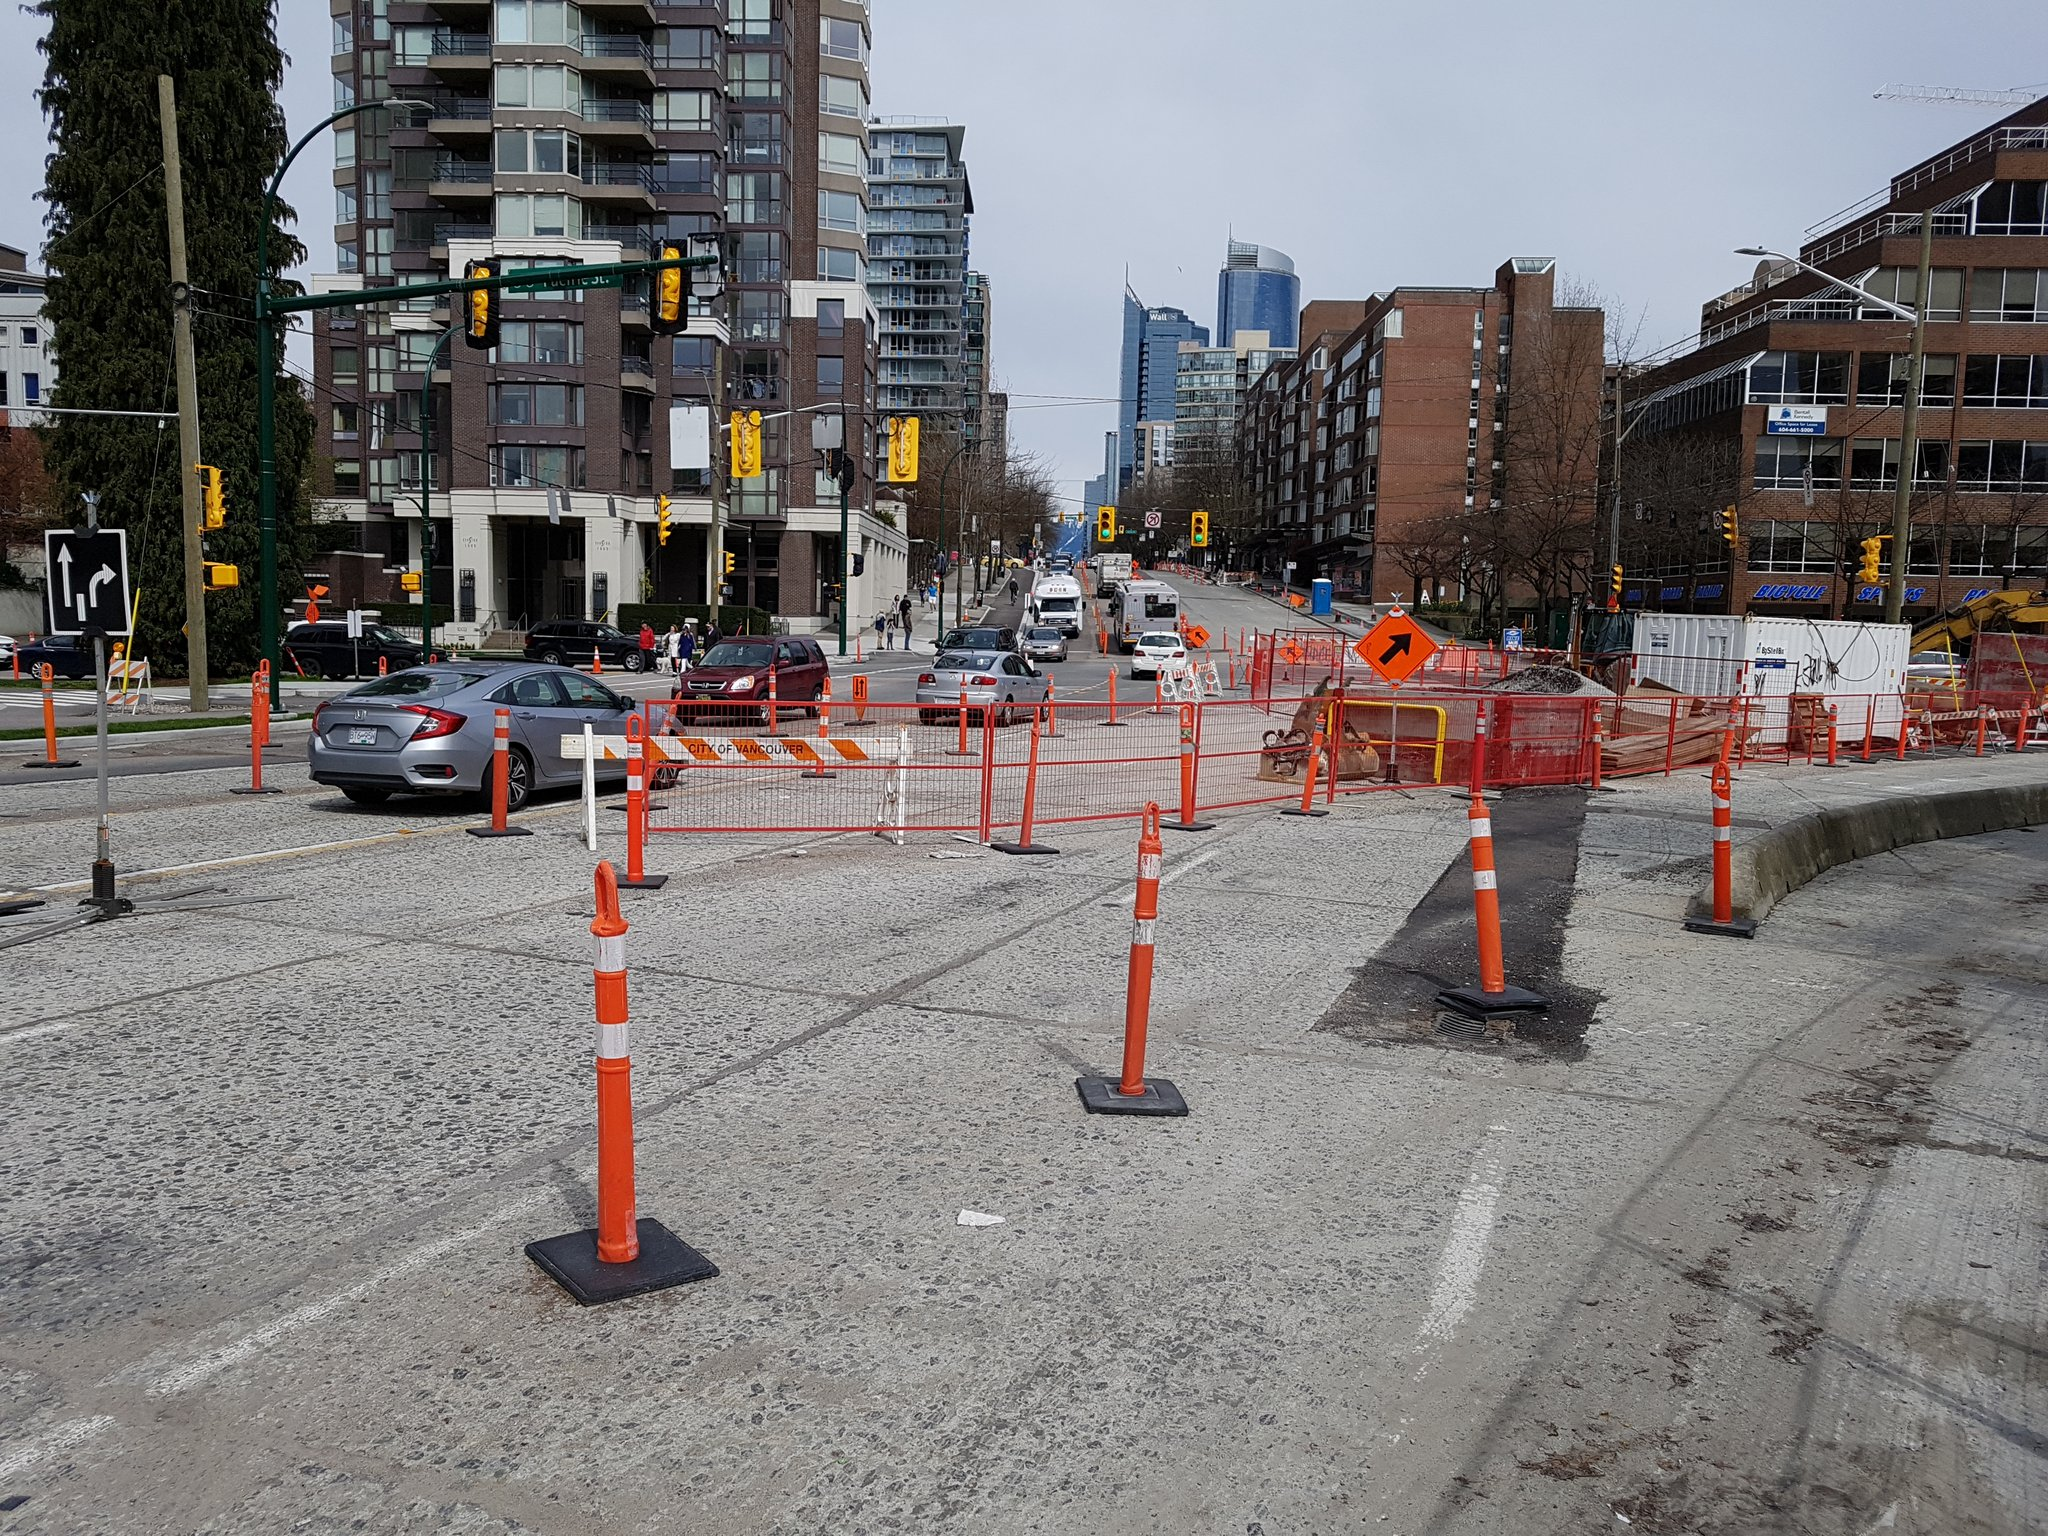 At north end, new protected bike lanes on west & north legs nearly complete, eventually to form partially protected intersection #yyjbike https://t.co/DVOcNIlzCb